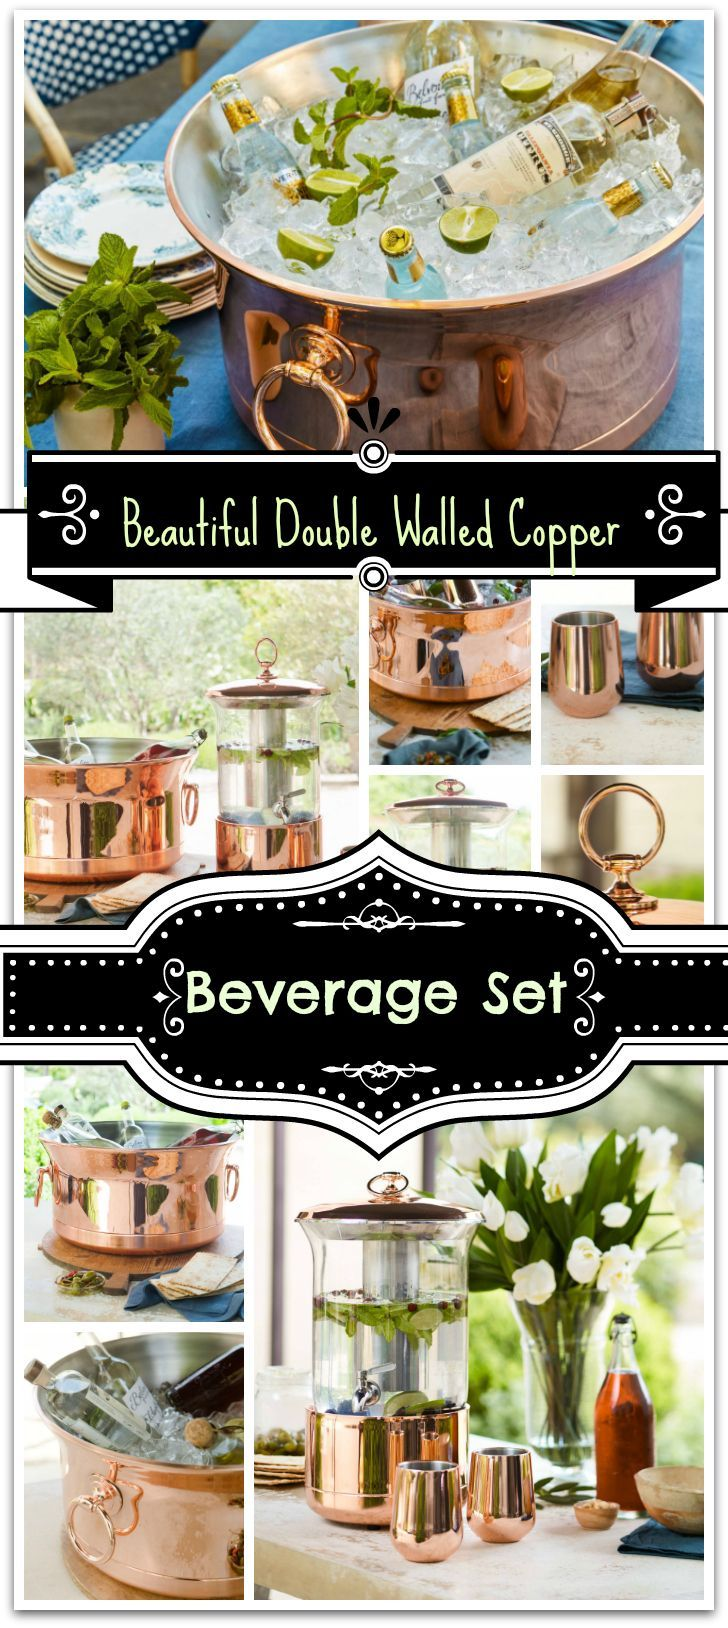 This a beautiful set perfect for any gathering. Would be beautiful at a wedding! #wedding #ad #eventplanning #partysupplies #copper